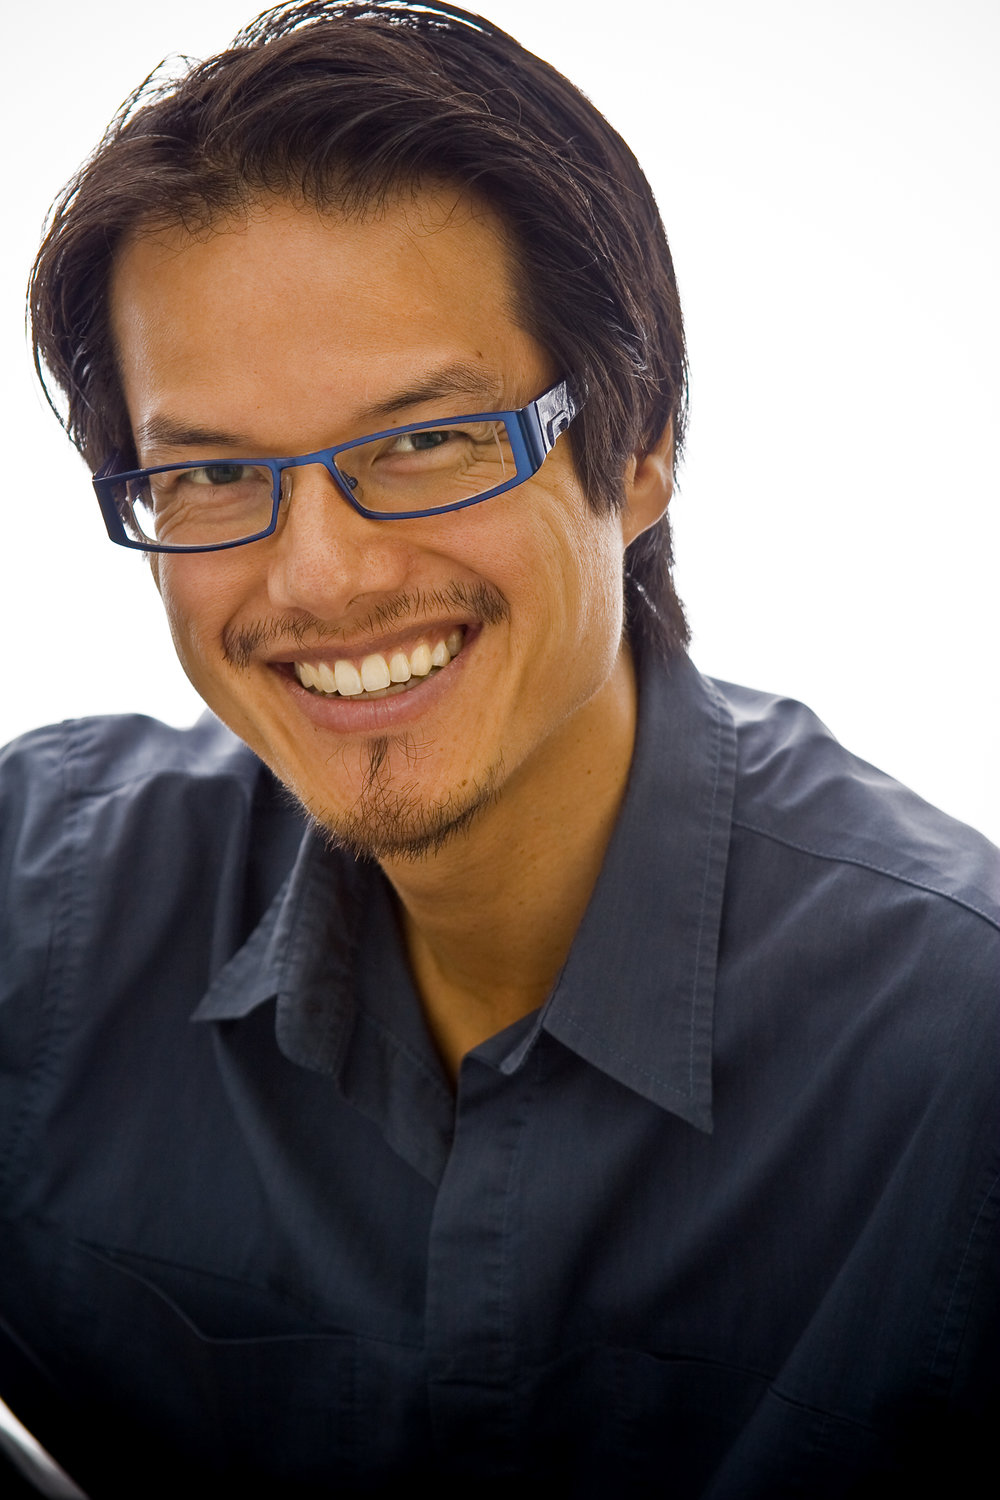 JON YEO - EXECUTIVE SPEAKER COACH